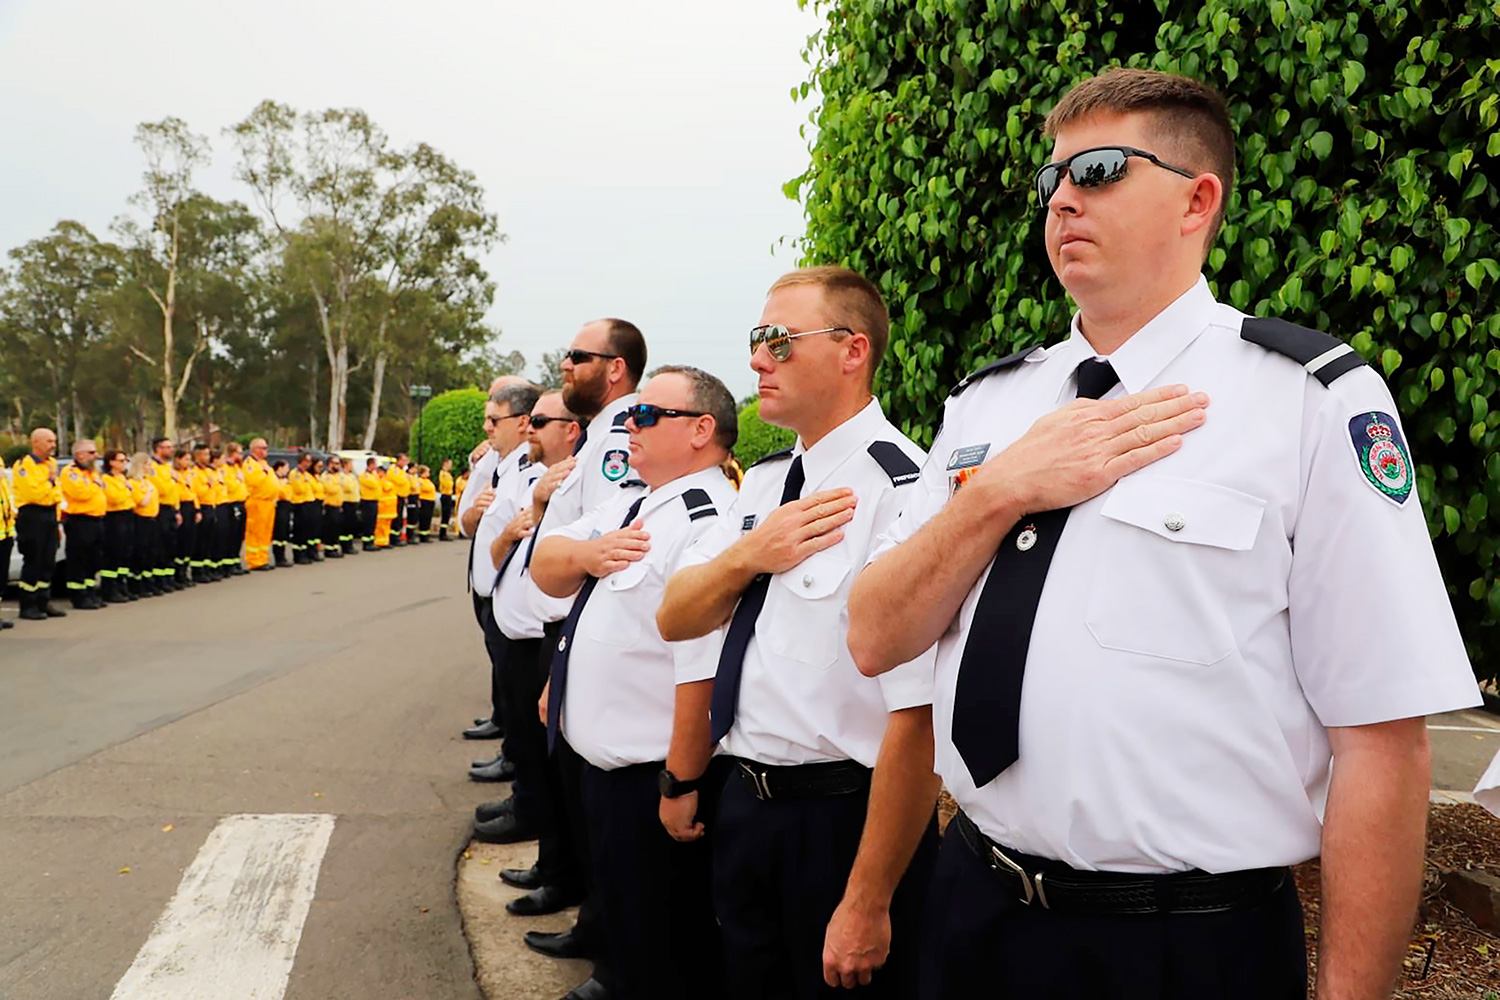 New South Wales Rural Fire Service crew watch as the casket of NSW RFS volunteer Andrew O'Dwyer arrives for his funeral service at Our Lady of Victories Catholic Church in Horsley Park, Sydney, . O'Dwyer, 36, and RFS colleague Geoffrey Keaton were killed six days before Christmas when a tree fell in the path of their truck at the still-burning Green Wattle Creek fire, causing it to roll Wildfires, Sydney, Australia - 07 Jan 2020